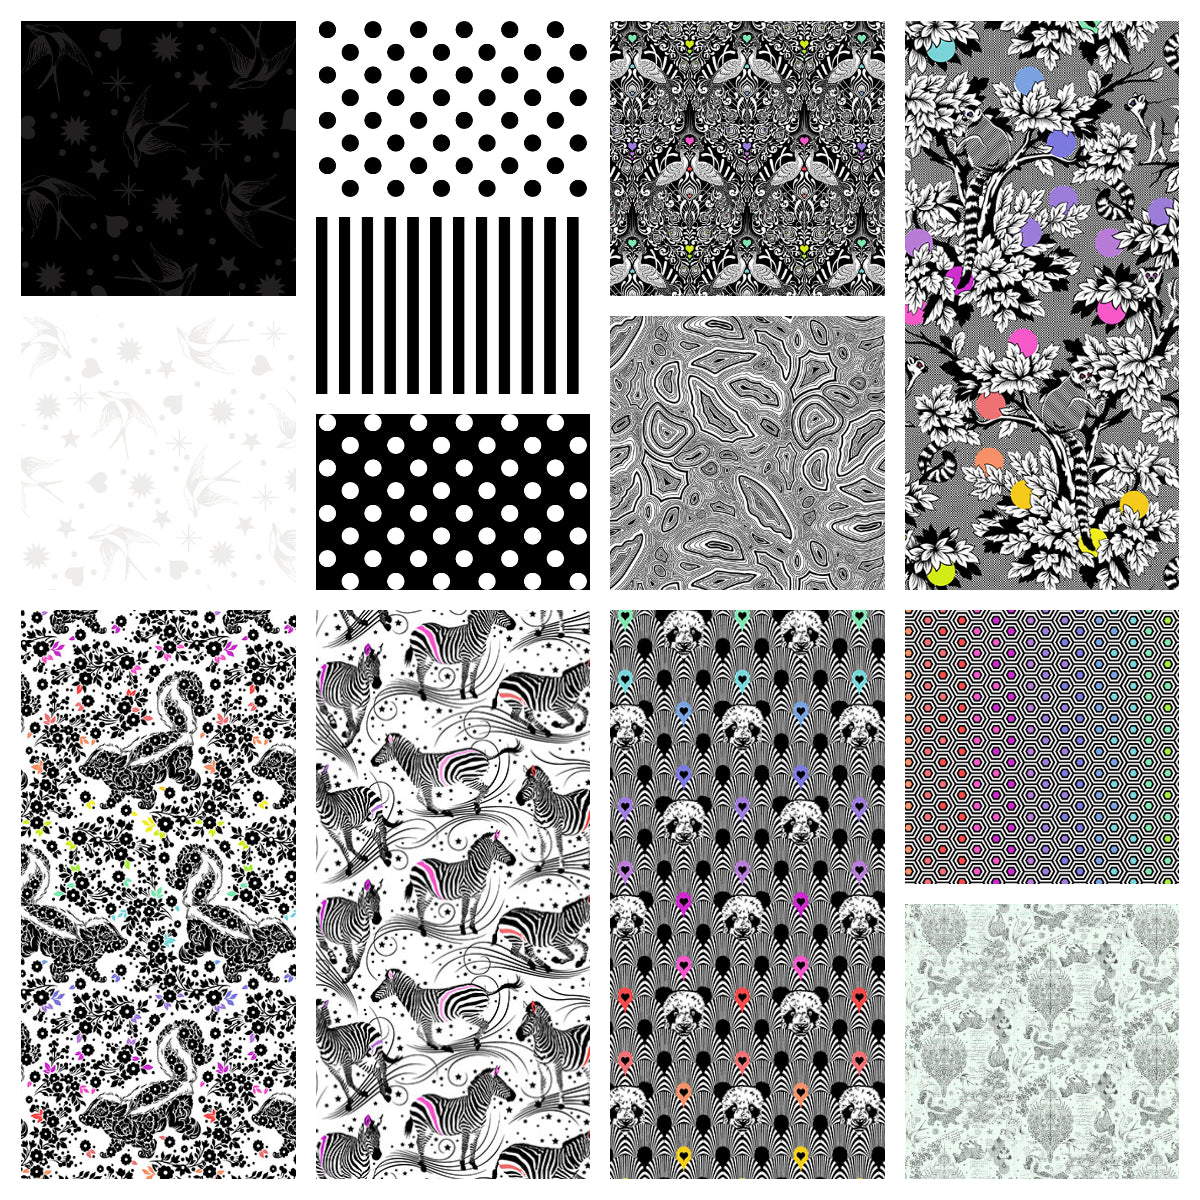 This HALF YARD BUNDLE contains 13 quilting cotton prints from Linework by Tula Pink for Freespirit Fabrics Manufacturer: FreeSpirit Fabrics Designer: Tula Pink Collection: Linework Material: 100% Cotton Weight: Quilting